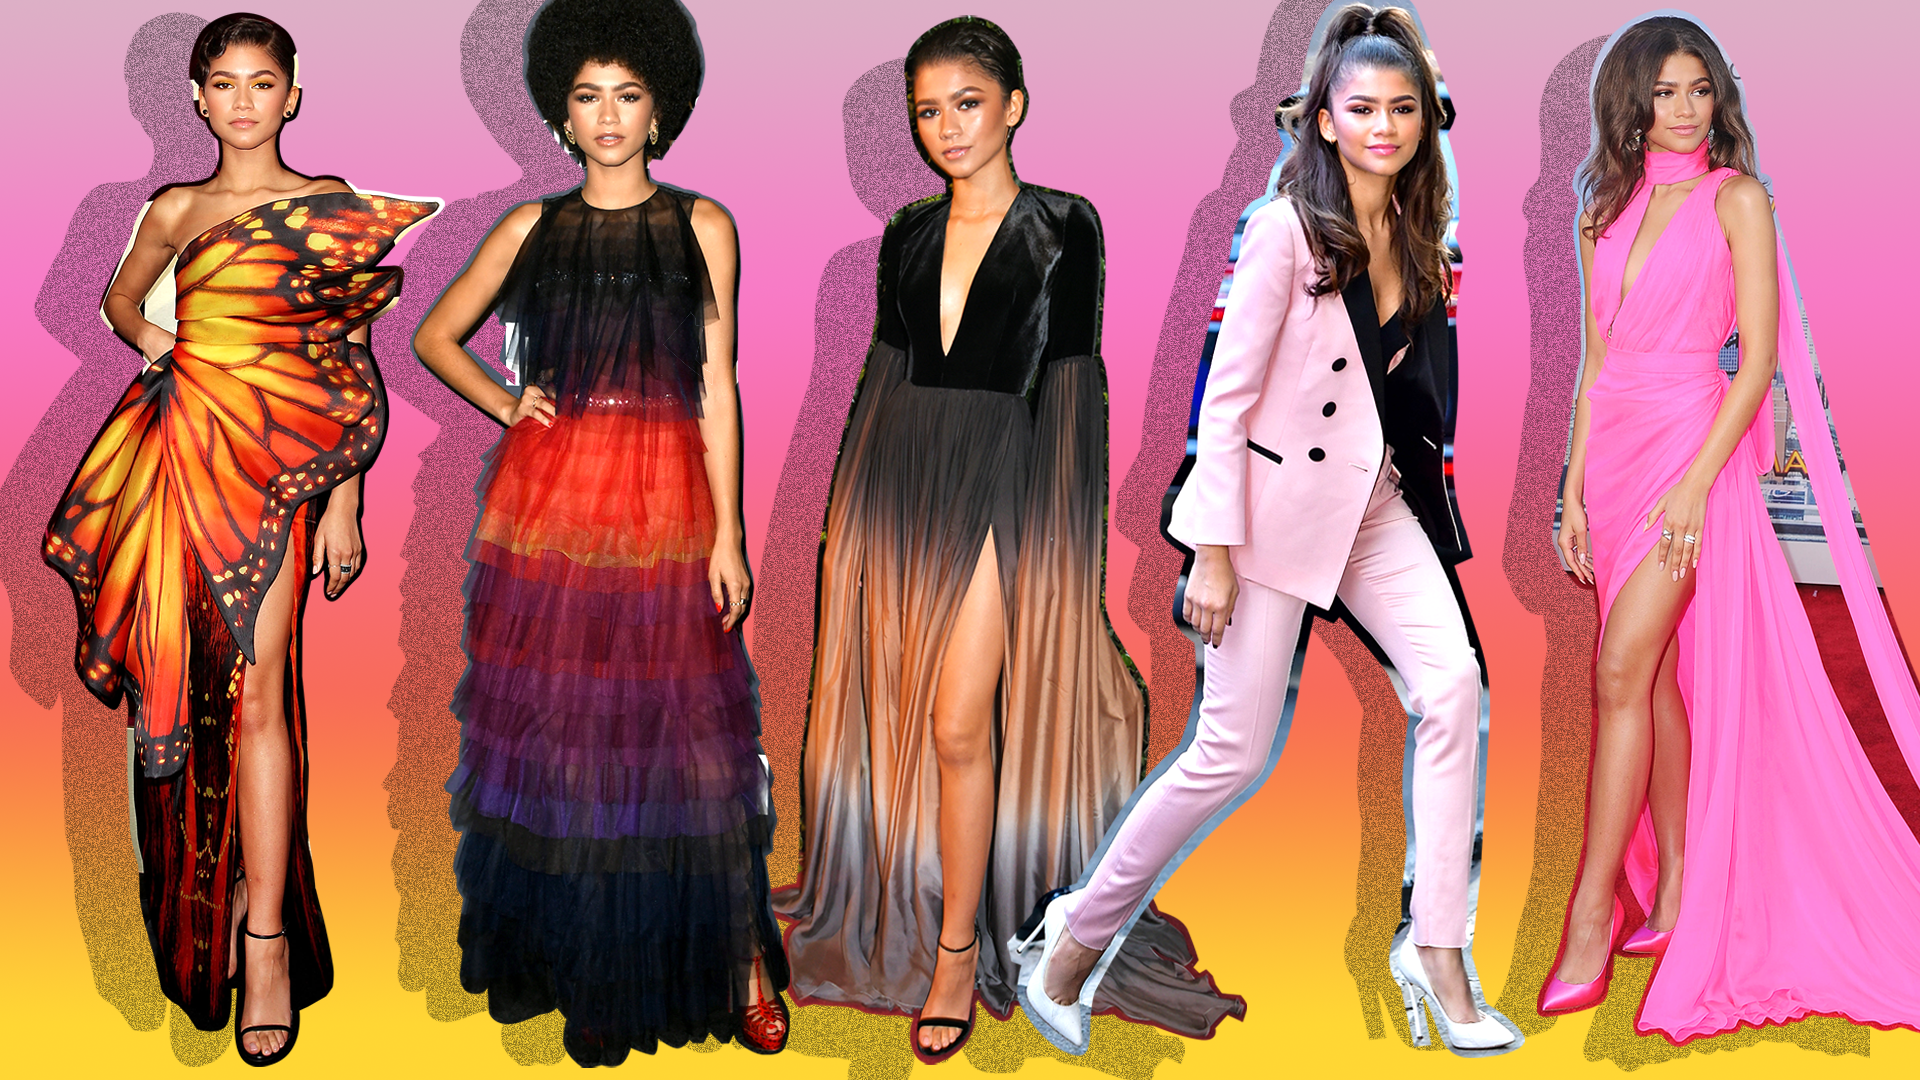 37 Times Zendaya Made Our Jaws Drop with Her Killer Fashion Choices